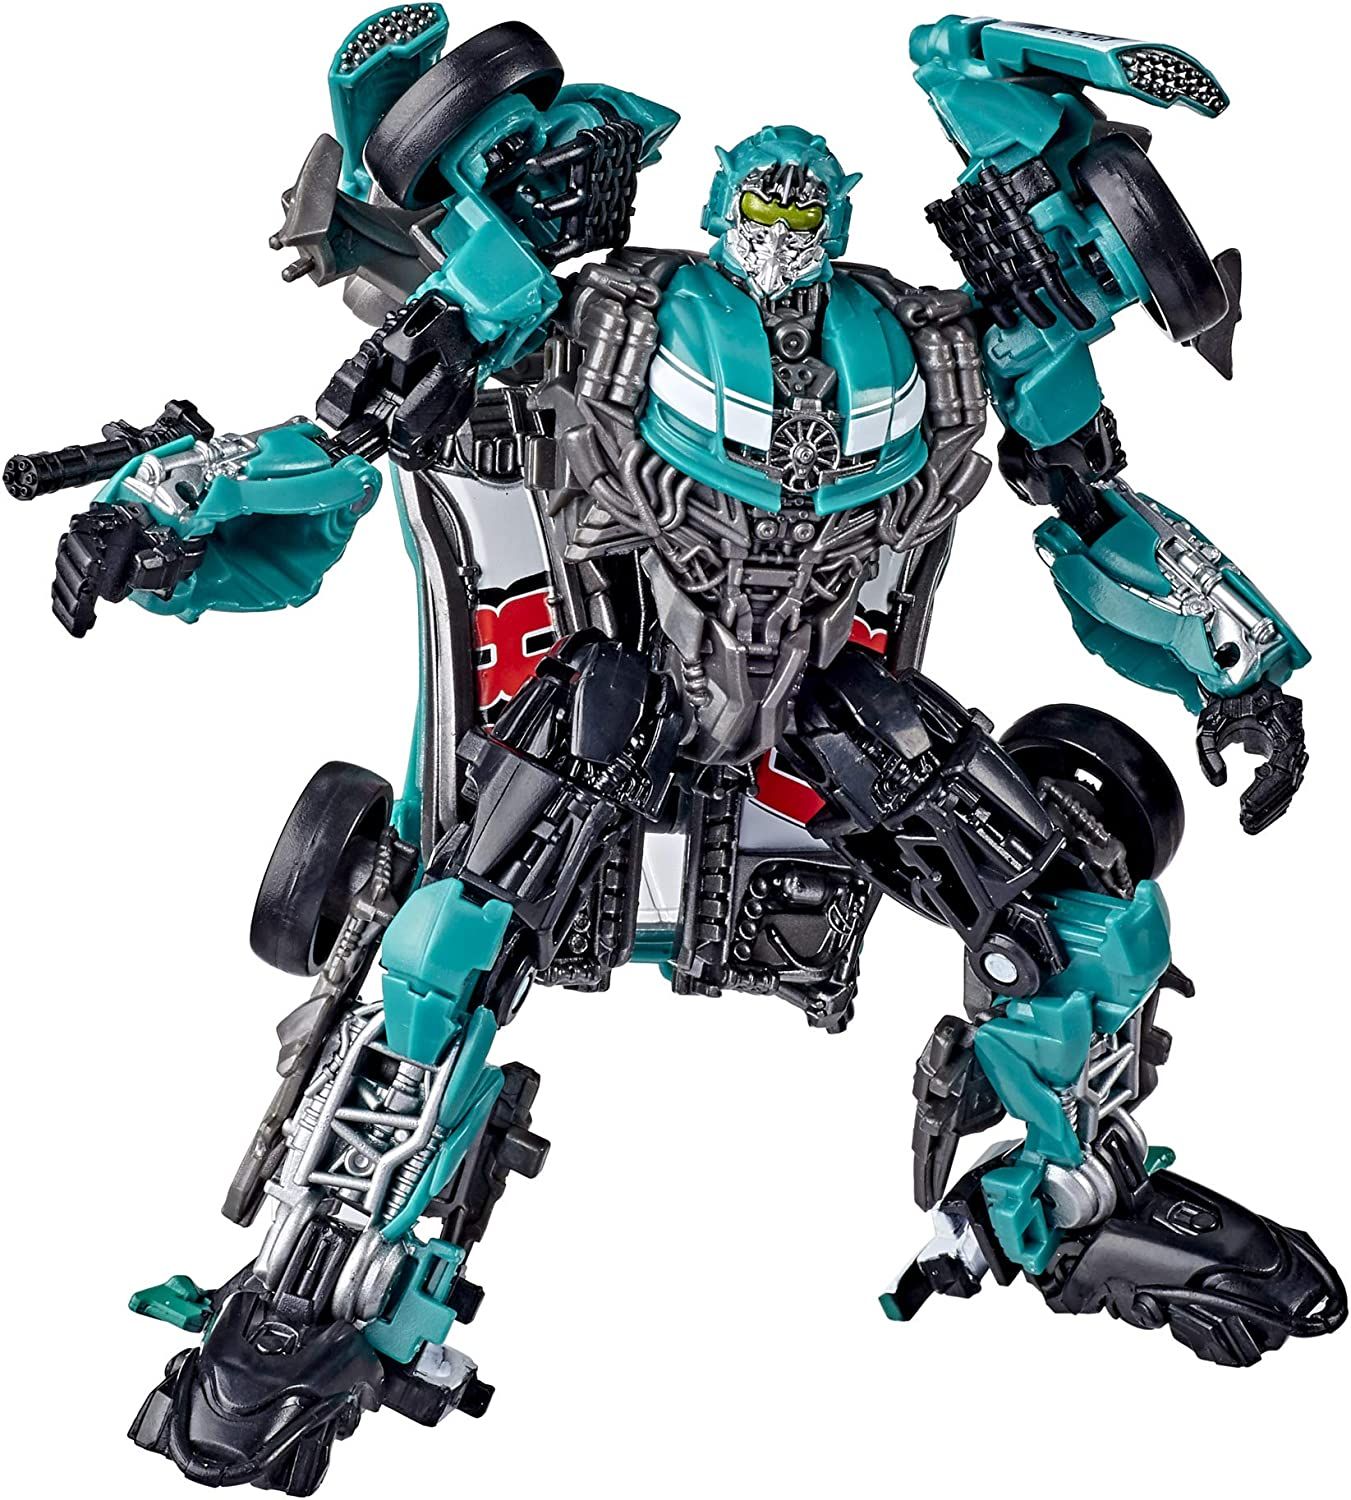 ROADBUSTER Transformers Studio Series Deluxe Action figure da collezione NUOVO 2020